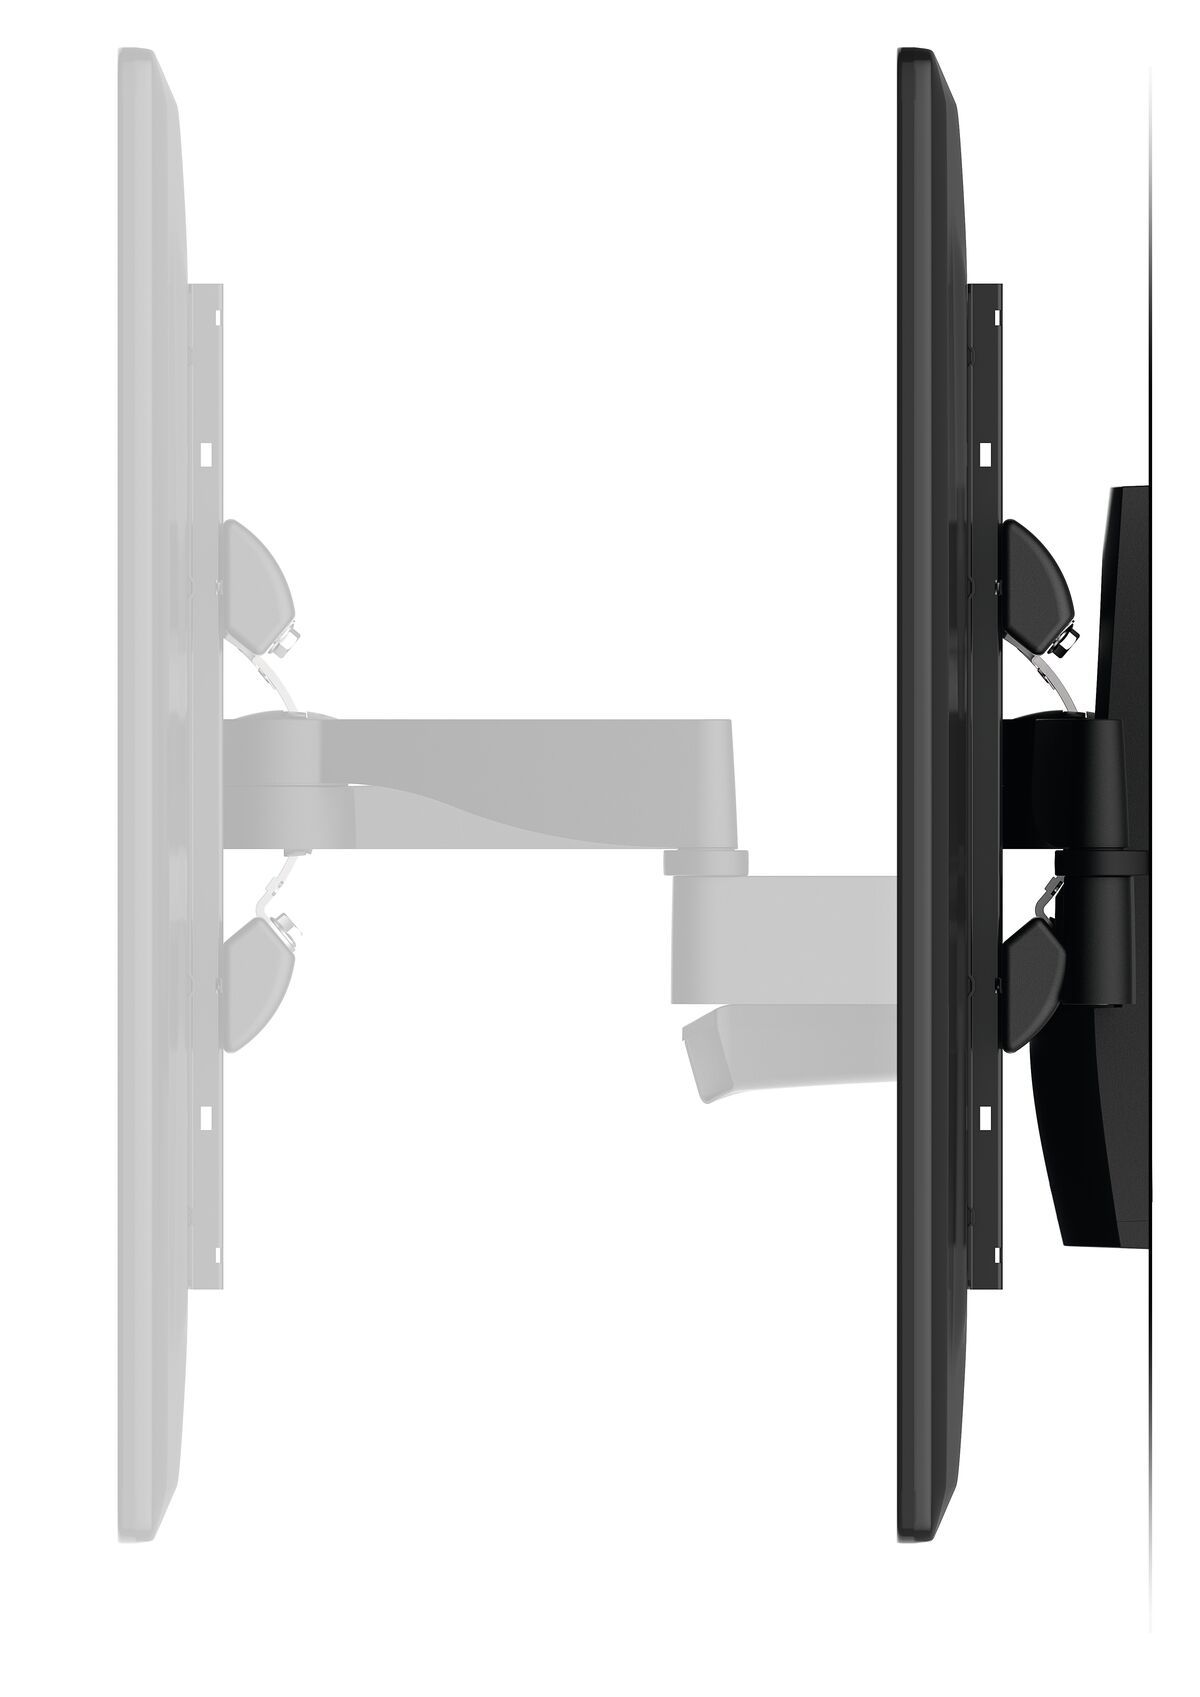 Vogel's WALL 2350 Full-Motion TV Wall Mount - Suitable for 40 up to 65 inch TVs - Motion (up to 120°) - Tilt up to 15° - Side view